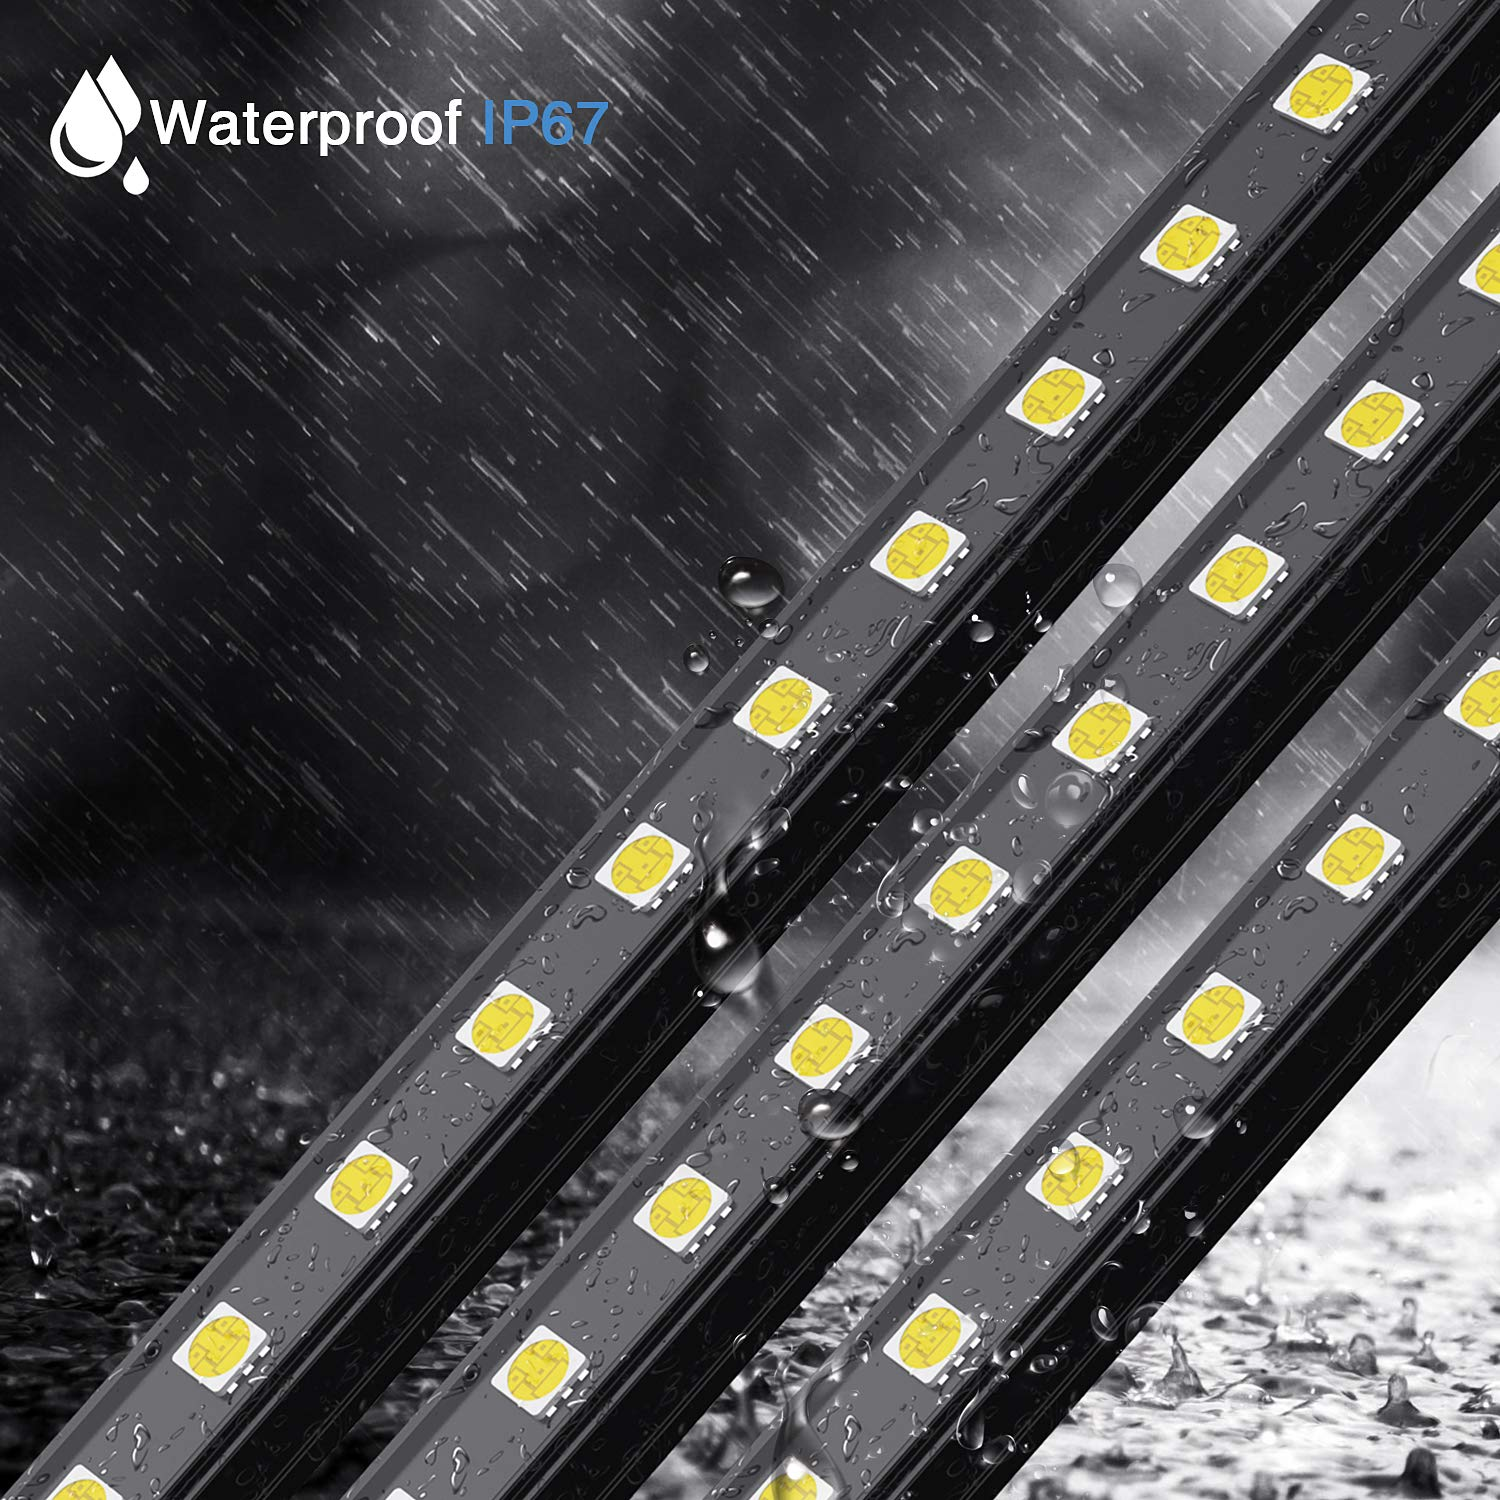 5000K Daylight White for Car Trip 4 Pack IP67 Waterproof 4.5W Car Camping Lights Bars with Vehicle Power Supply and Dimmer Switch Vehicle Repair Lighting Onforu Outdoor Car LED Strip Lights Kits